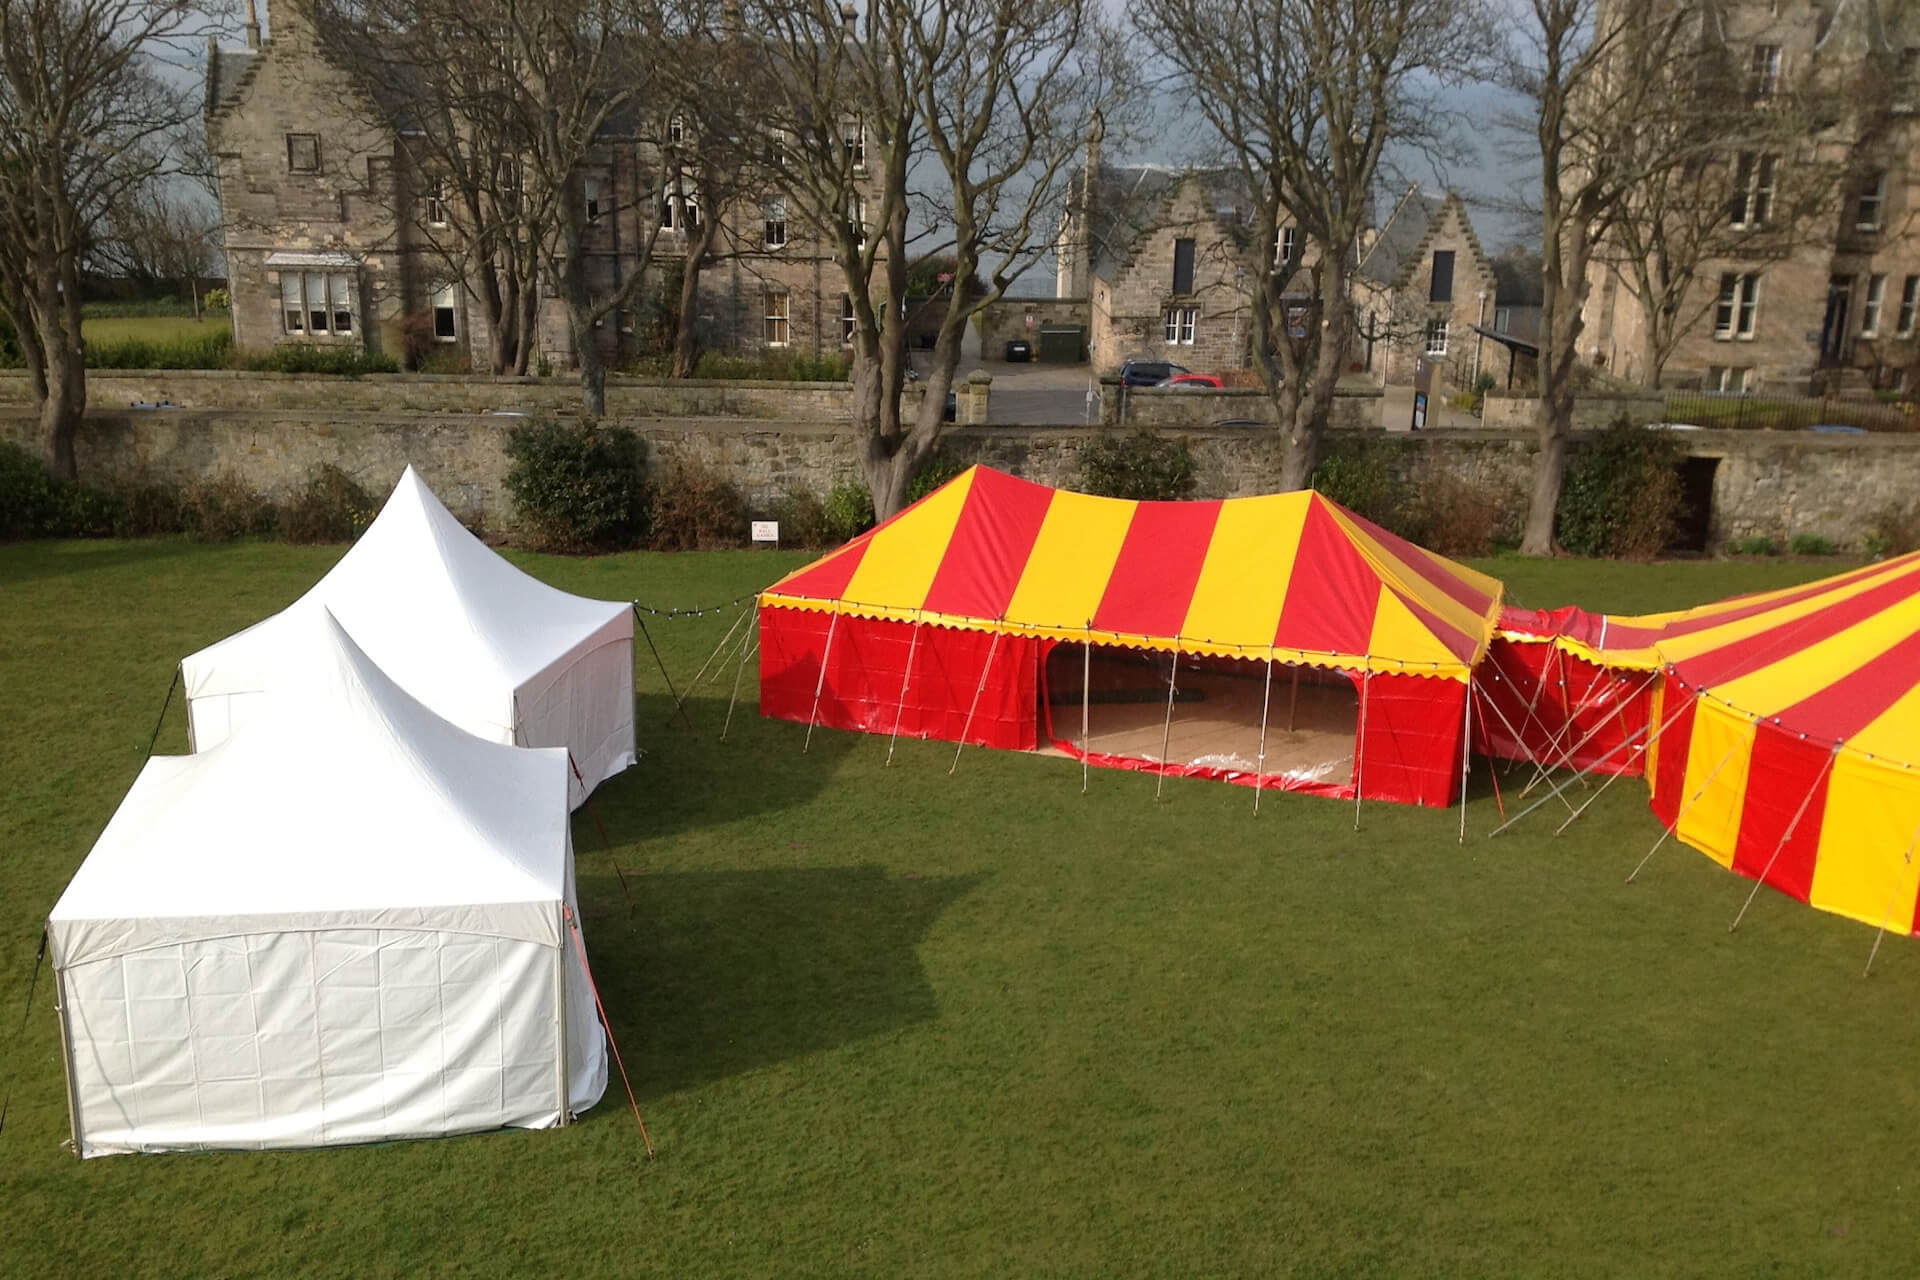 Student ball tents